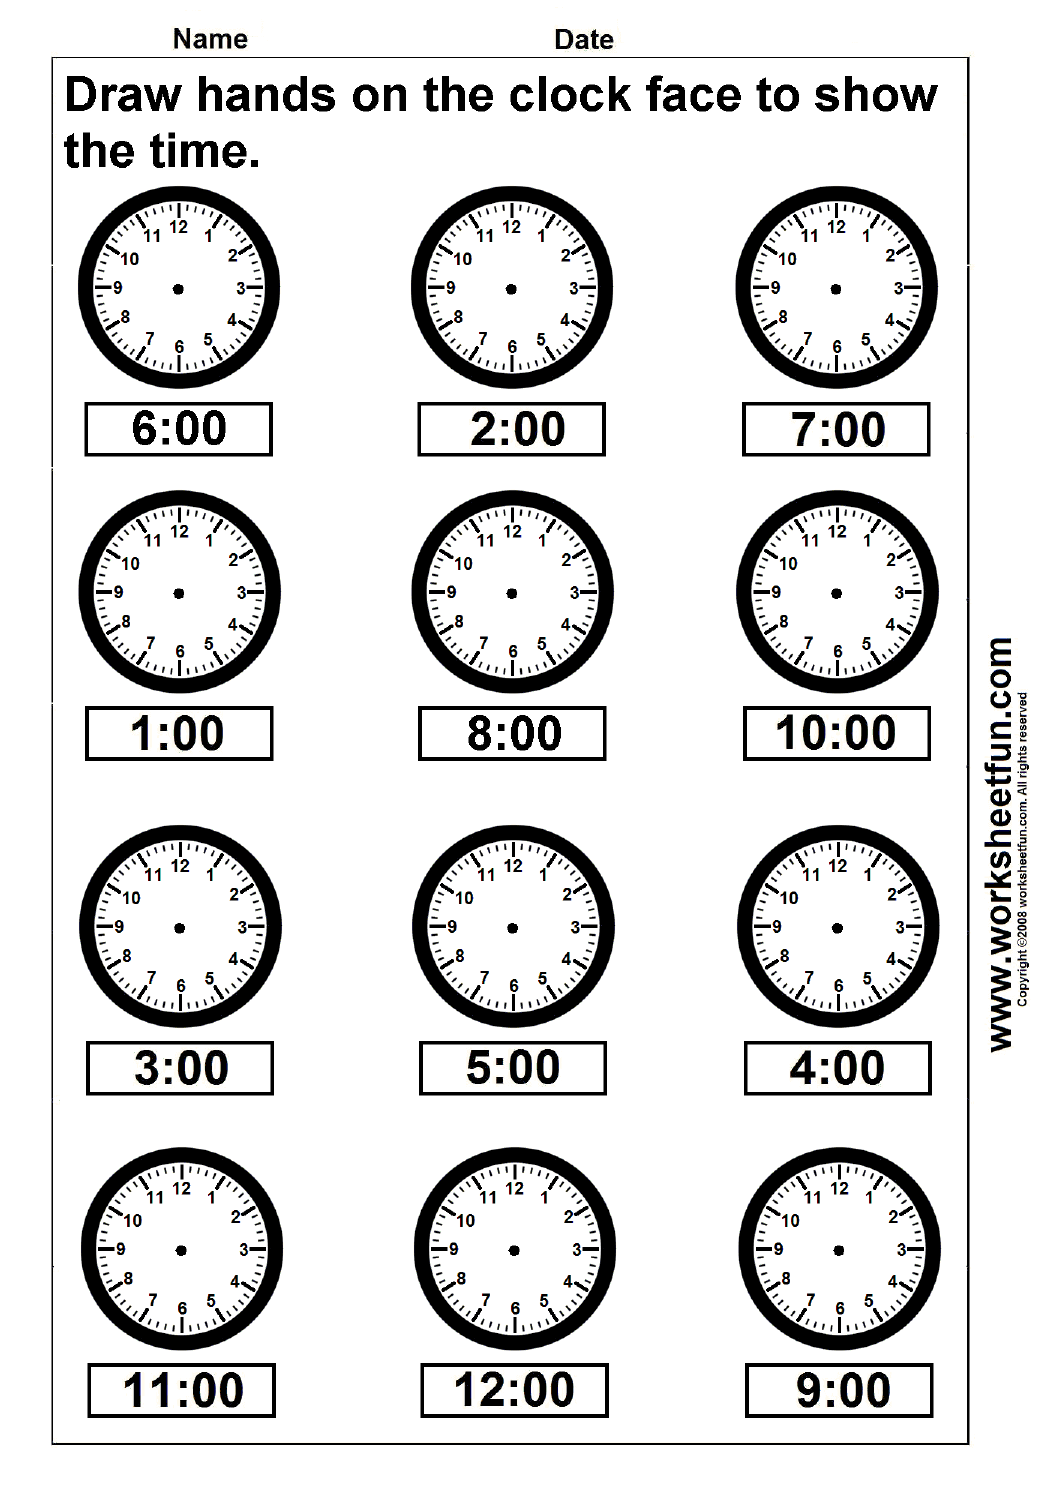 worksheet Digital Clock Worksheets draw hands on the clock face to show time 4 worksheets worksheet 1 face